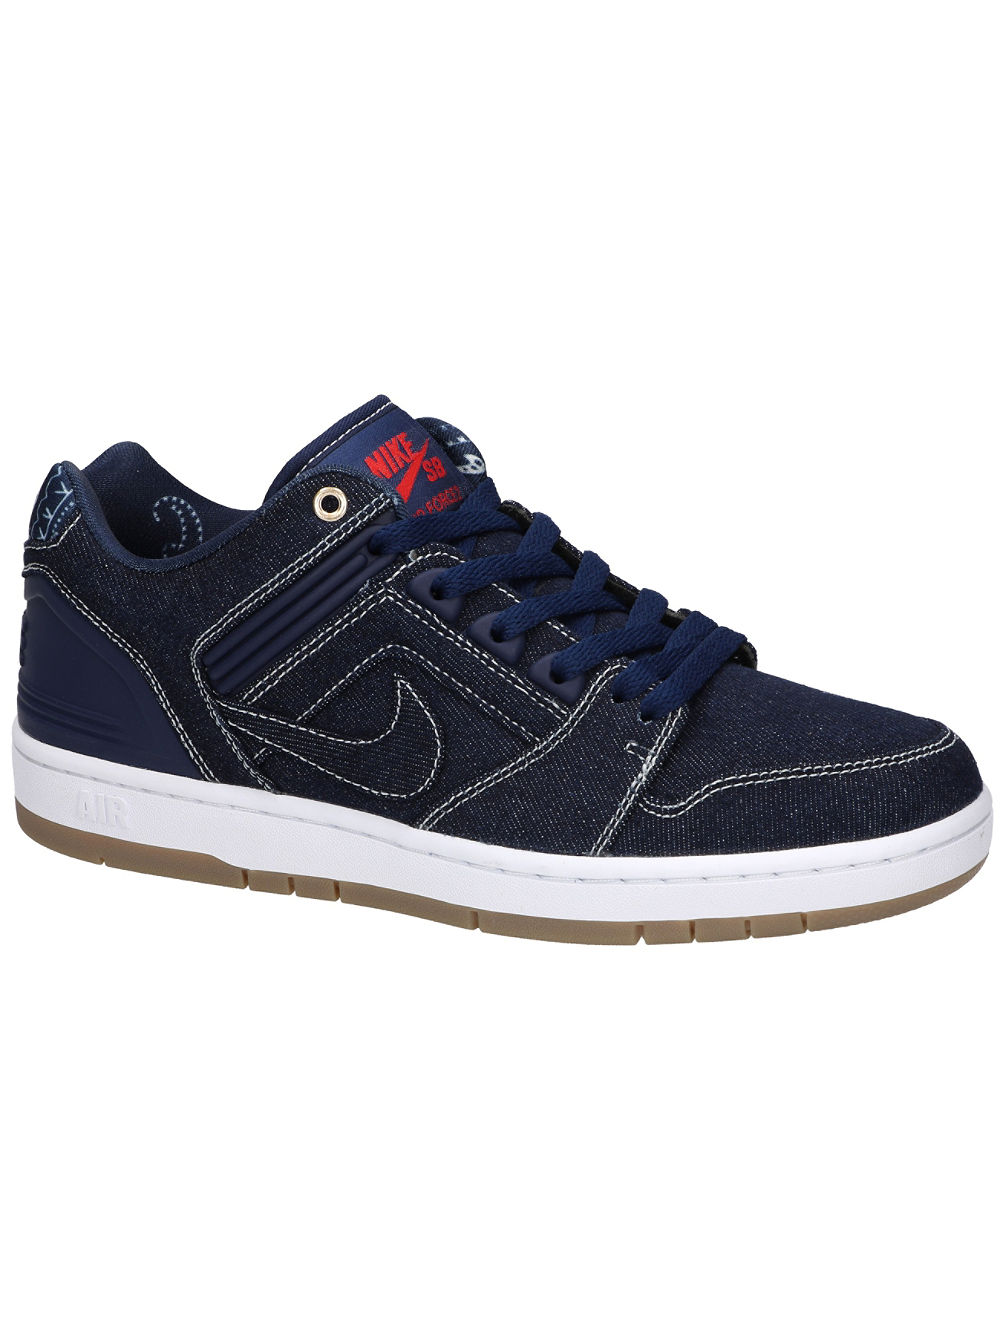 Air Force II Low QS Skate Shoes